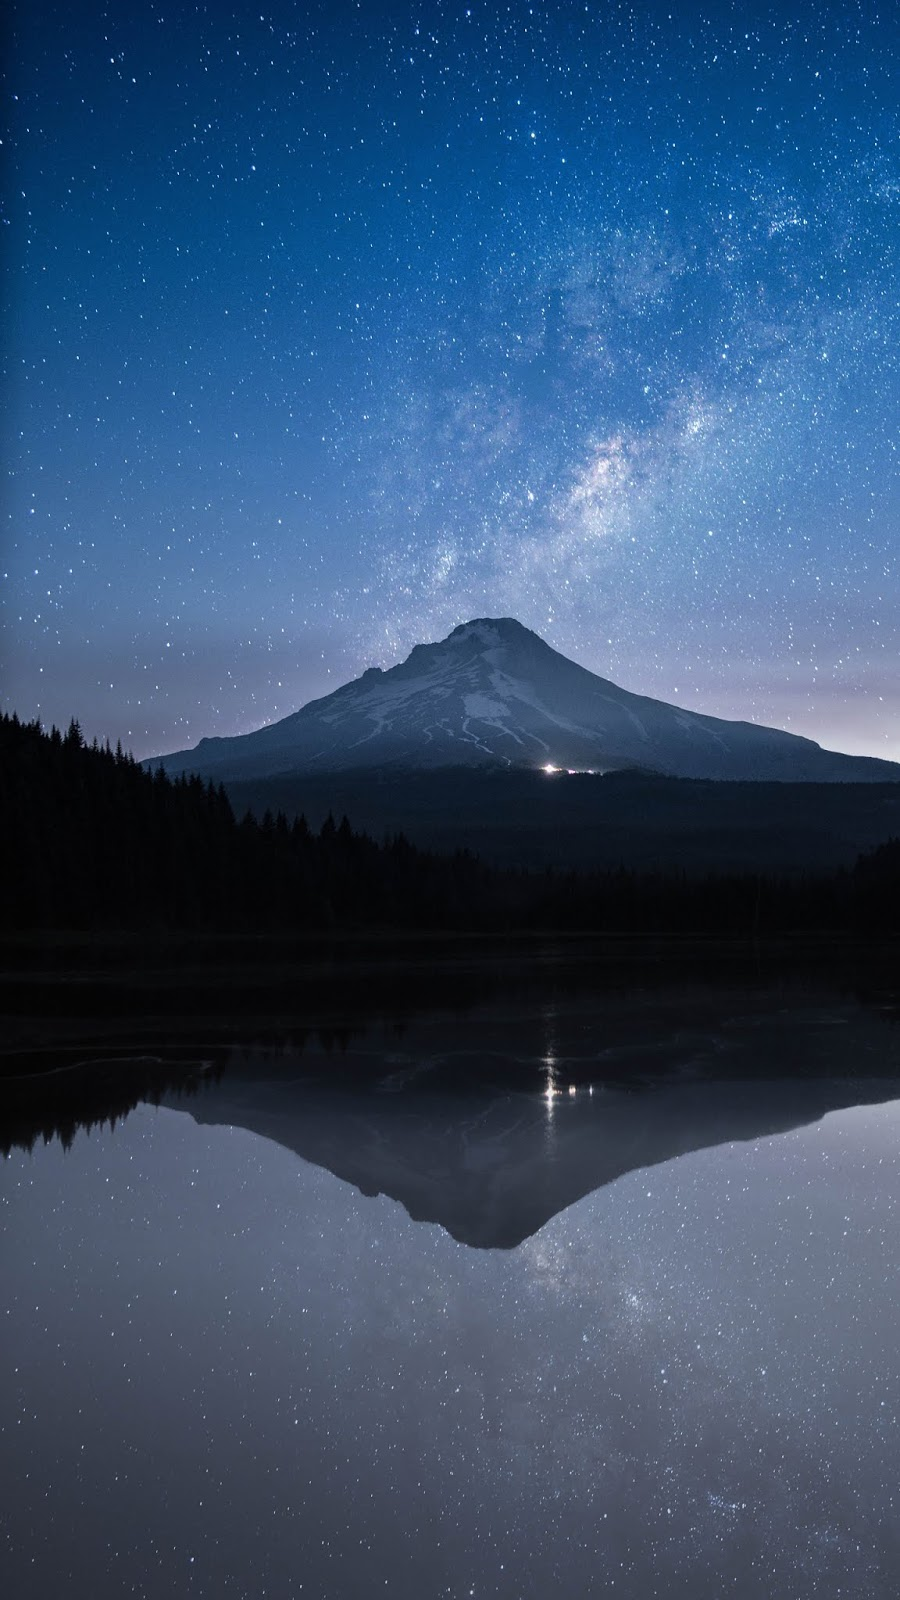 Starry night mountain wallpaper